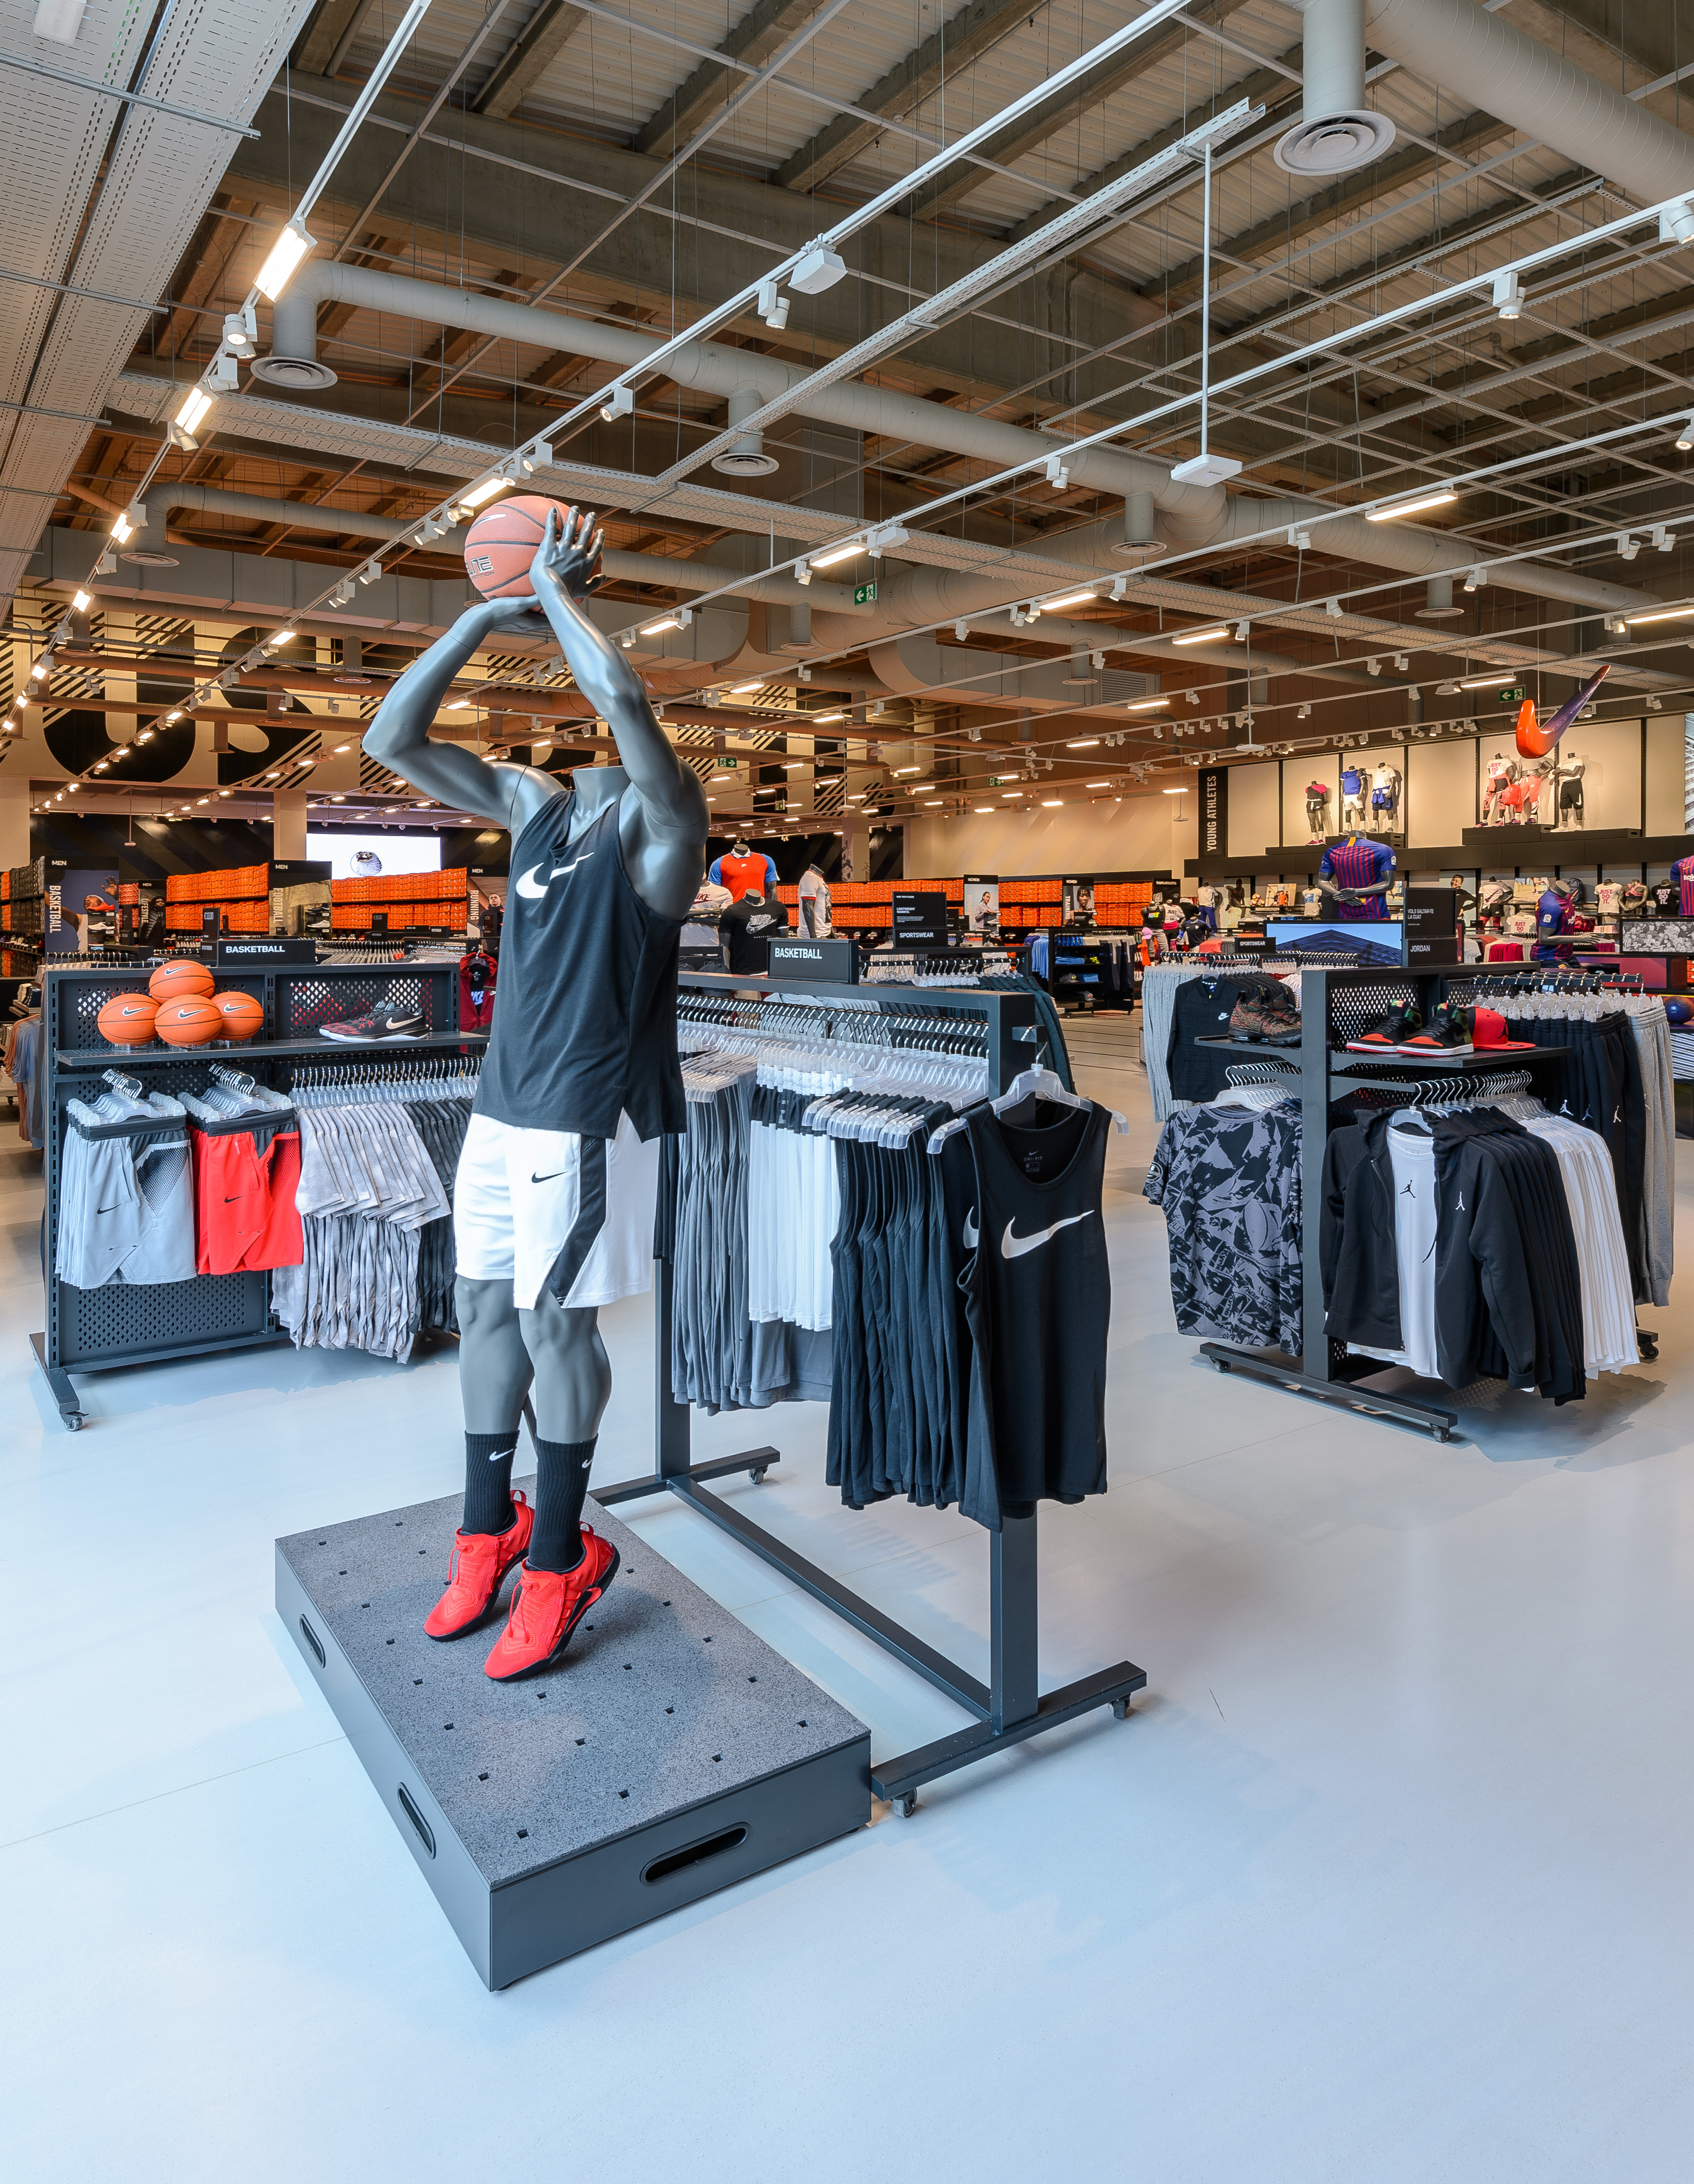 ligeramente bosquejo Eléctrico  Thinking Big: Delivering Nike's largest factory store in Europe | Triplar